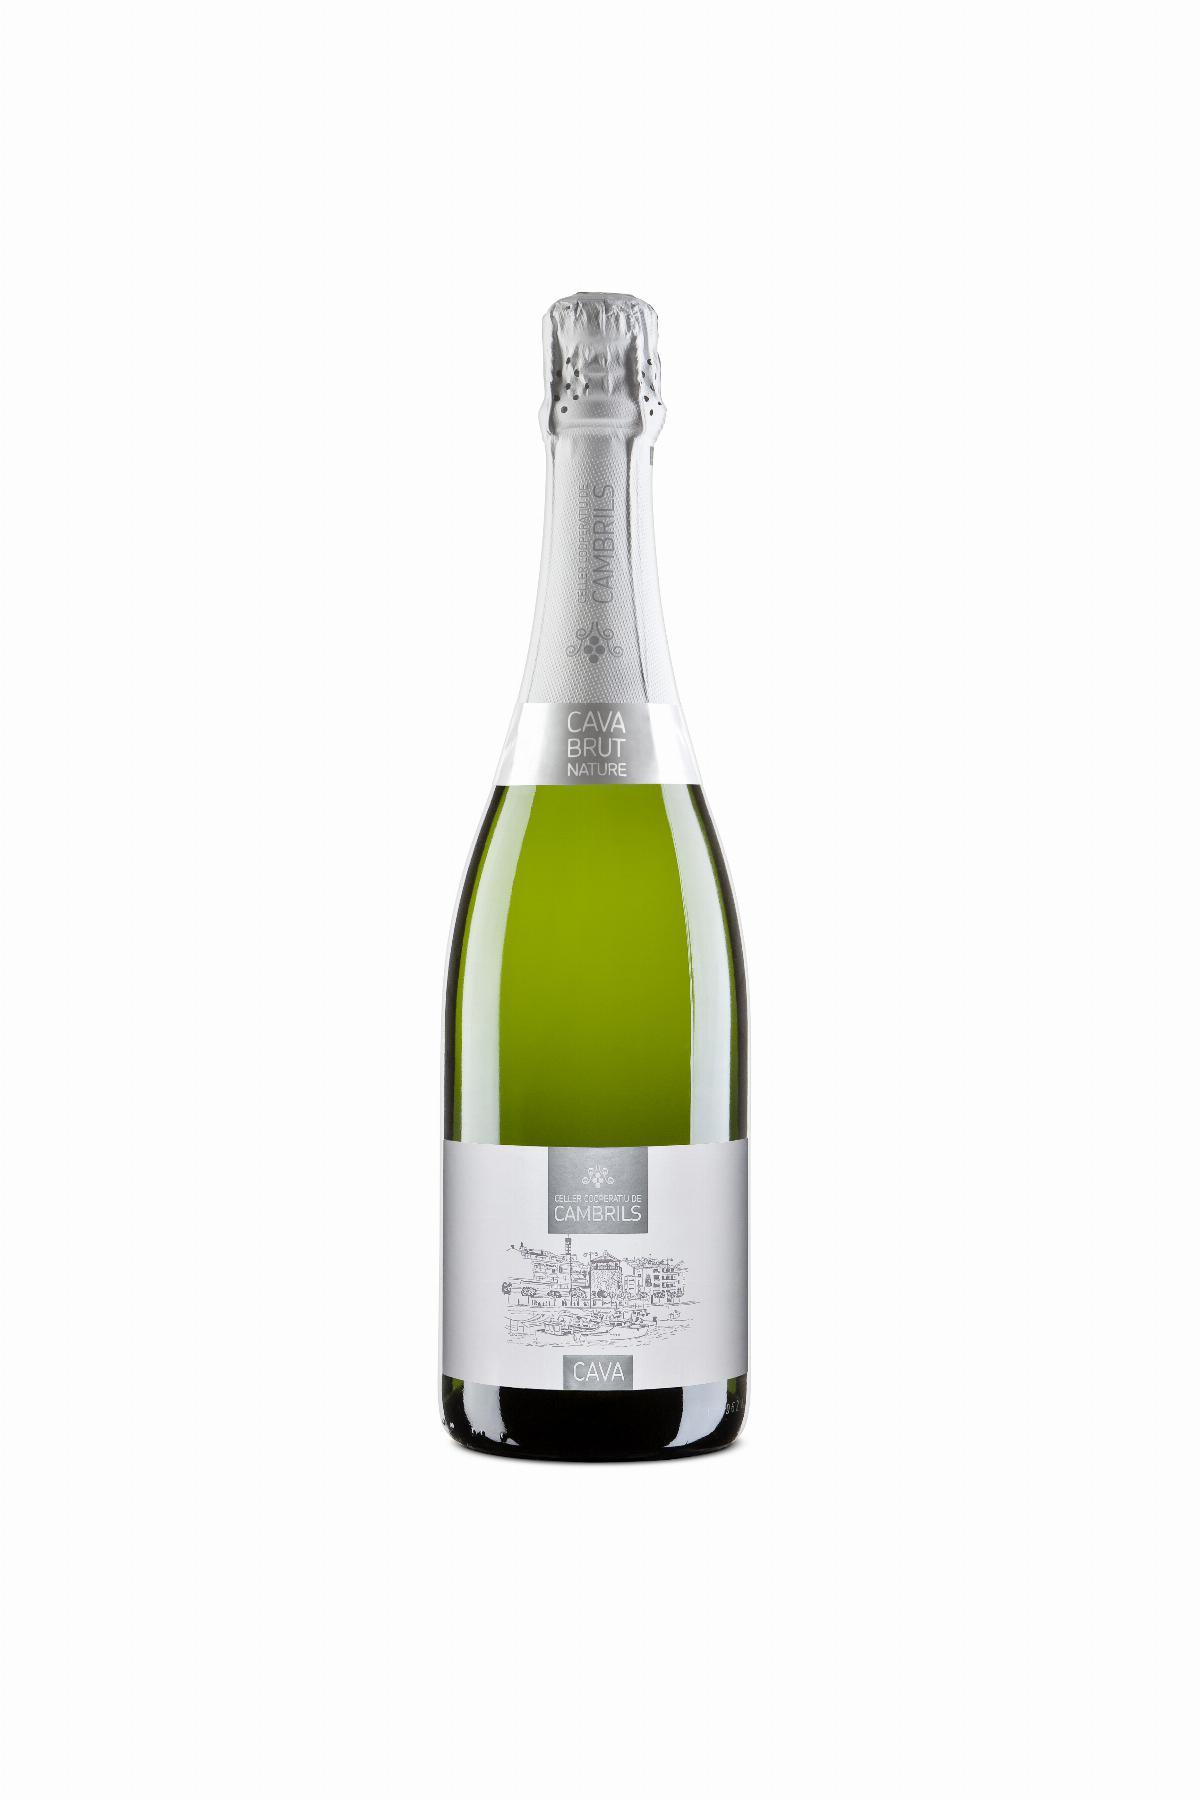 Cava - Sparkling wine - Cava Celler Cooperatiu Cambrils Brut-Nature, 750ml, CAT - Mestral Cambrils